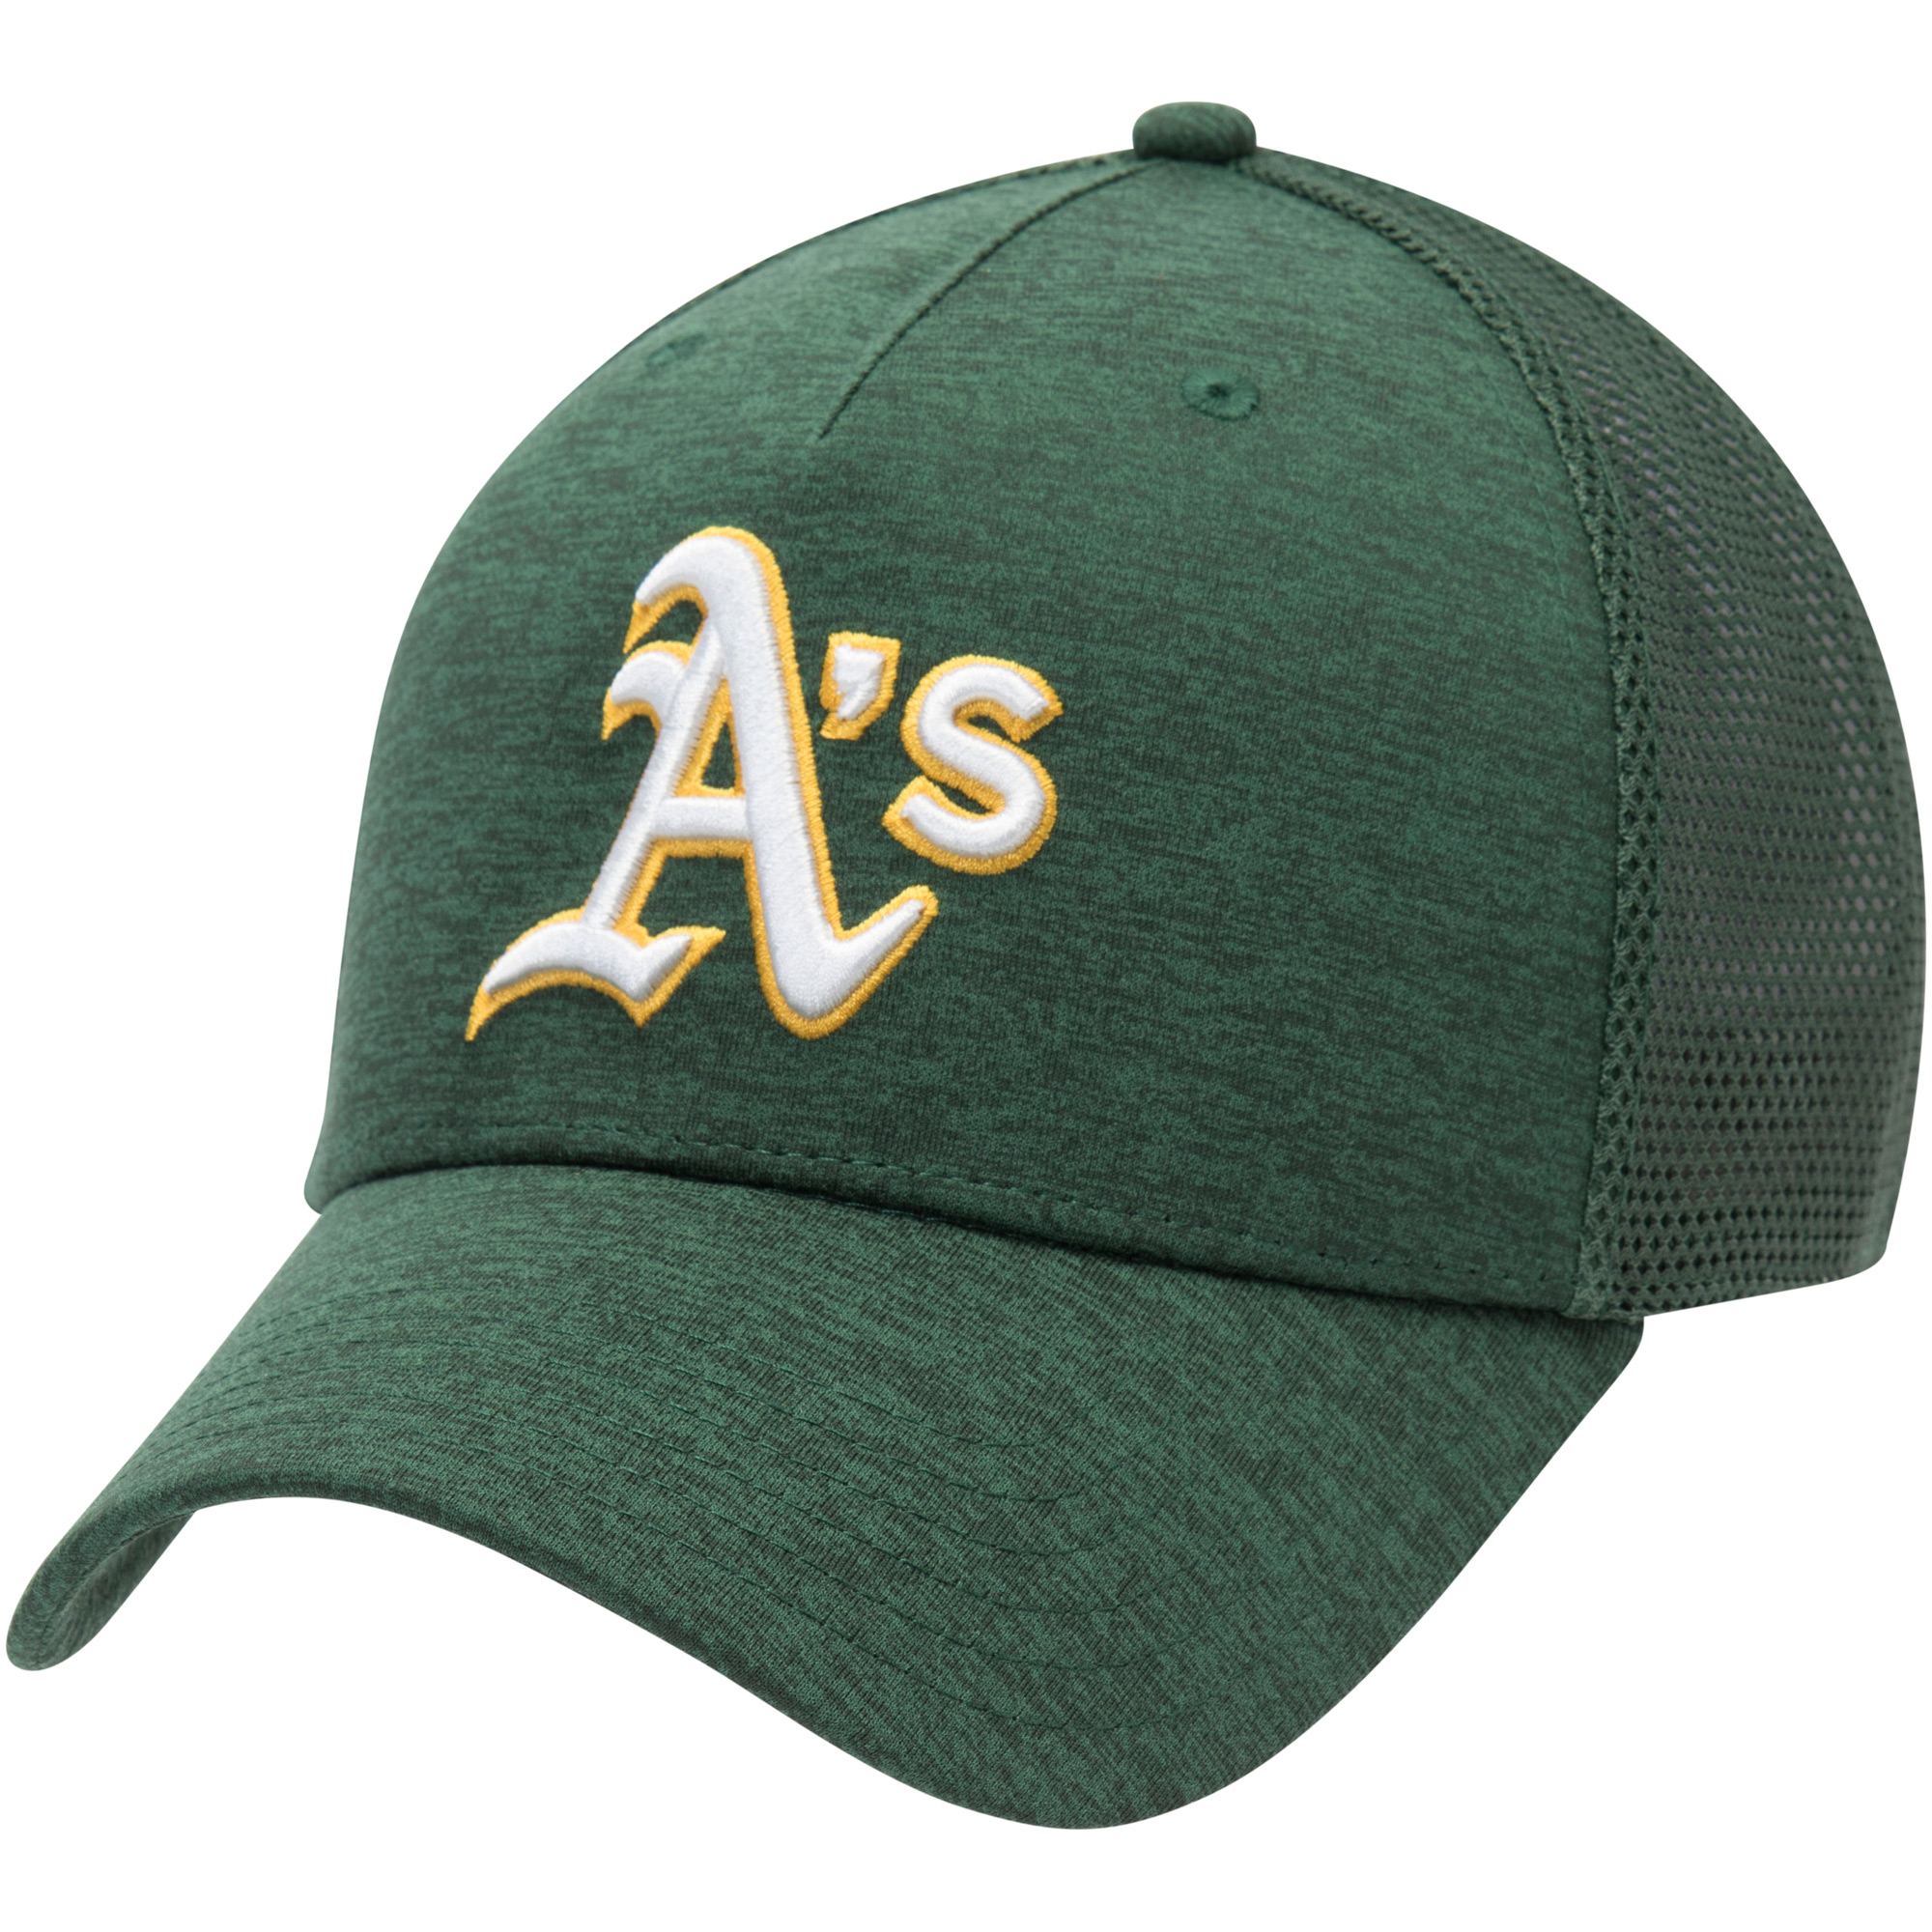 Oakland Athletics Under Armour Twist Closer Trucker Performance Adjustable Hat - Green - OSFA